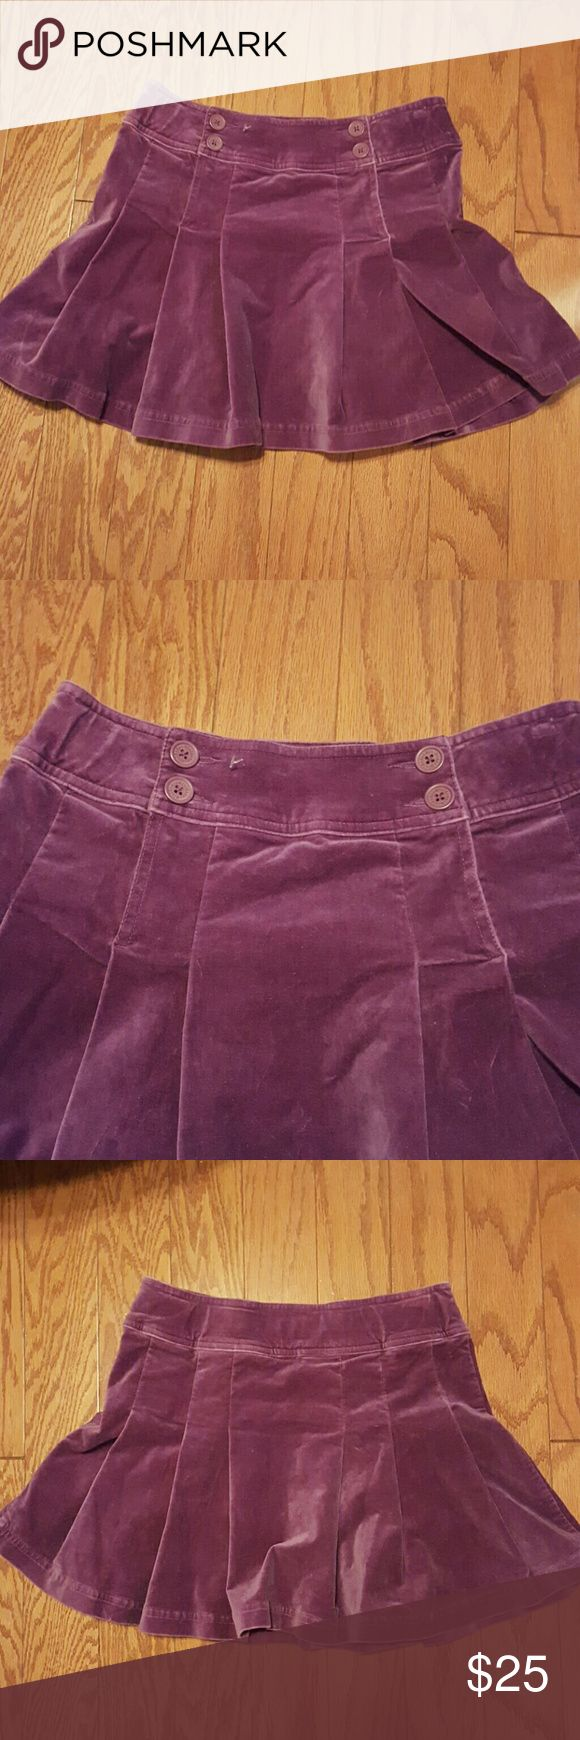 SALE!!🎉 BODEN VIOLET SUEDE SKIRT √Violet Suede Skirt √Size: 13-14Y √Top to Bottom: 15 √Waist Line: 14 (see the last picture) √Material: see the 5th picture √In good condition Boden Skirts Mini